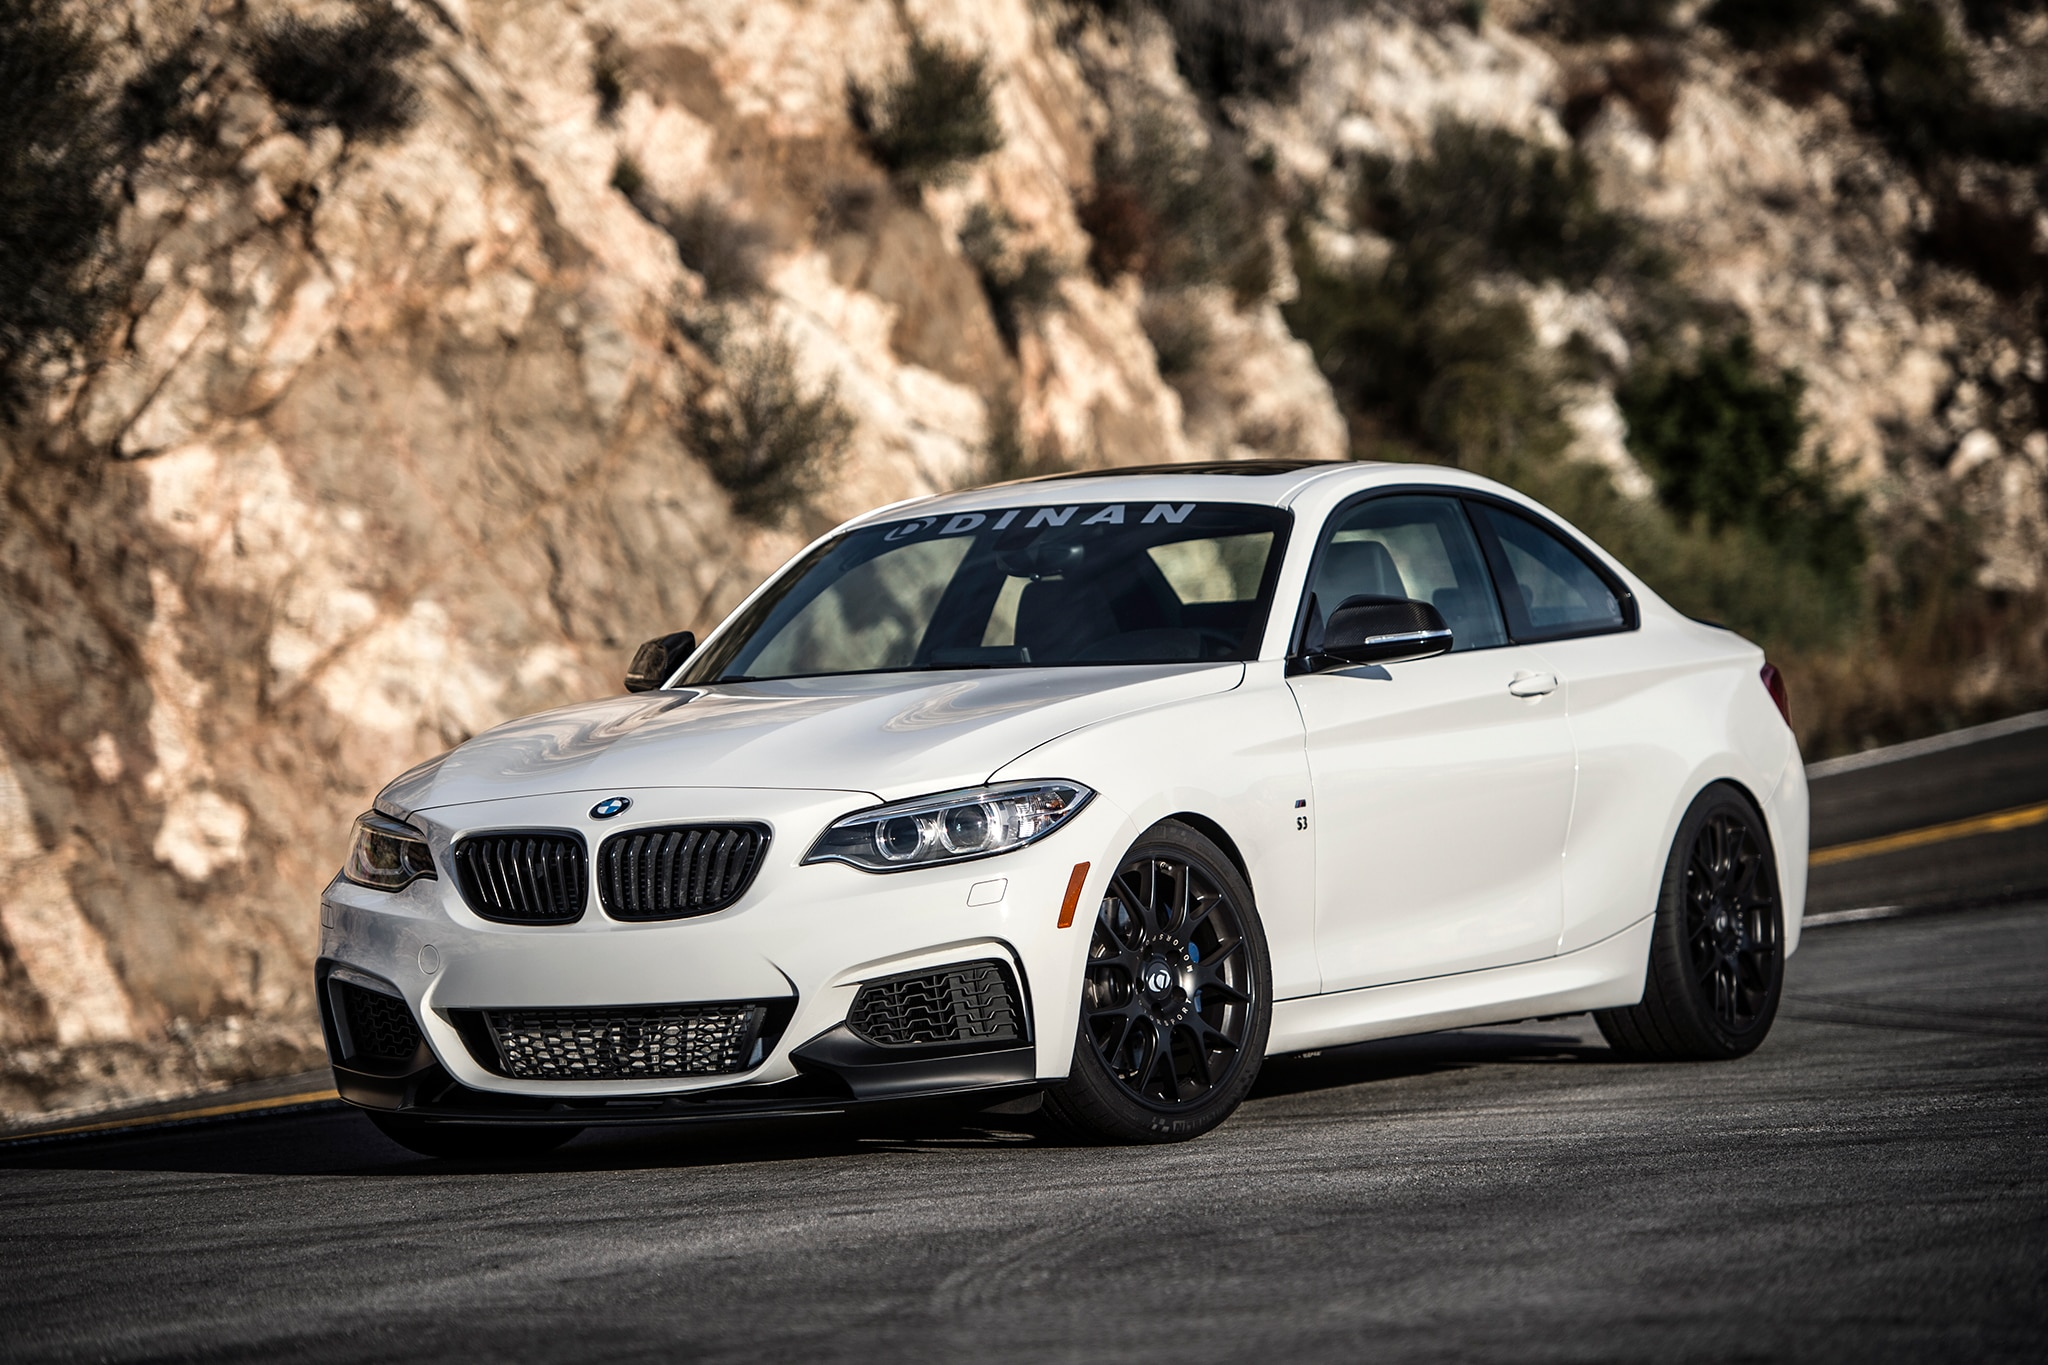 VIDEO: The Smoking Tire drives Dinan S3 BMW M235i